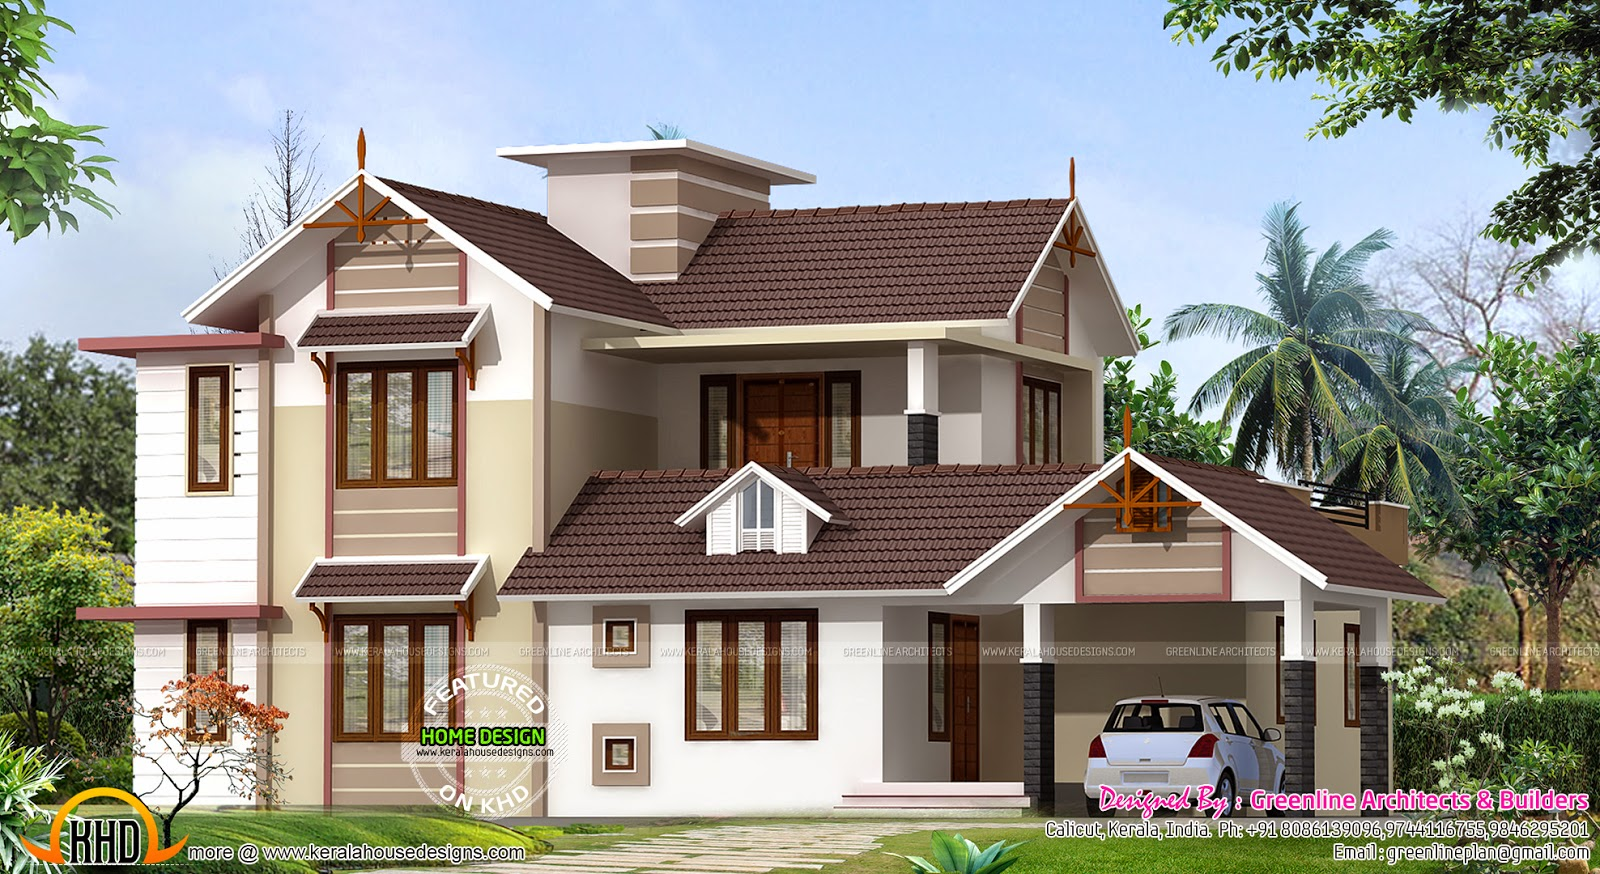 2400 sq ft new house design kerala home design and floor for House plans images gallery